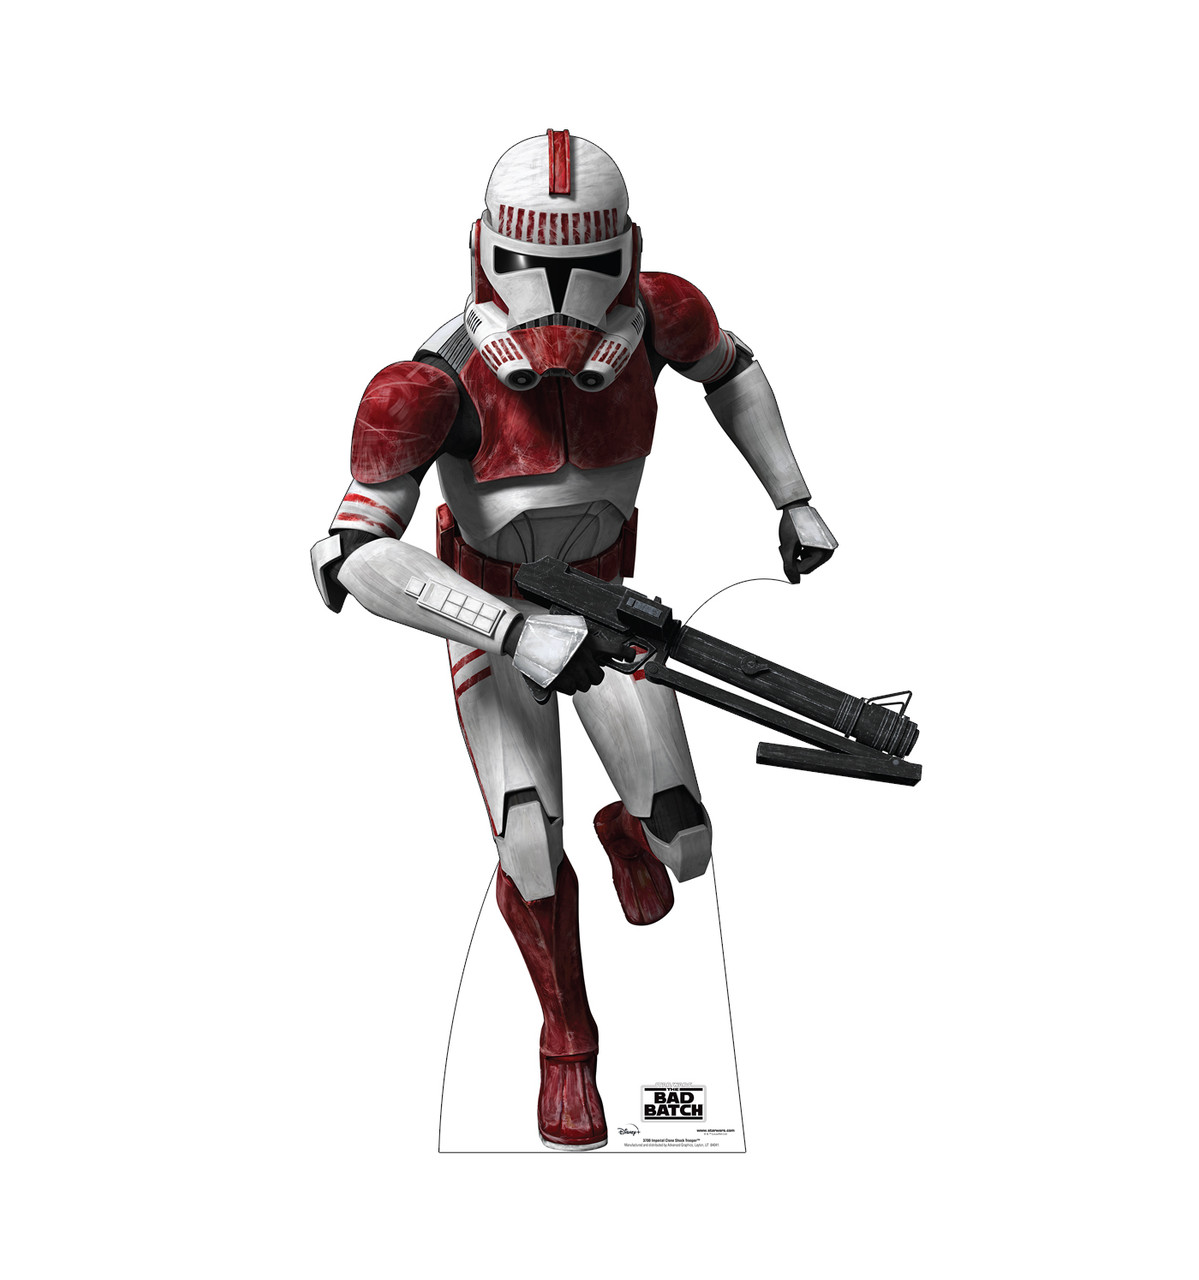 Life-size cardboard standee of Imperial Clone Shock Trooper  from The Bad Batch on Disney+.